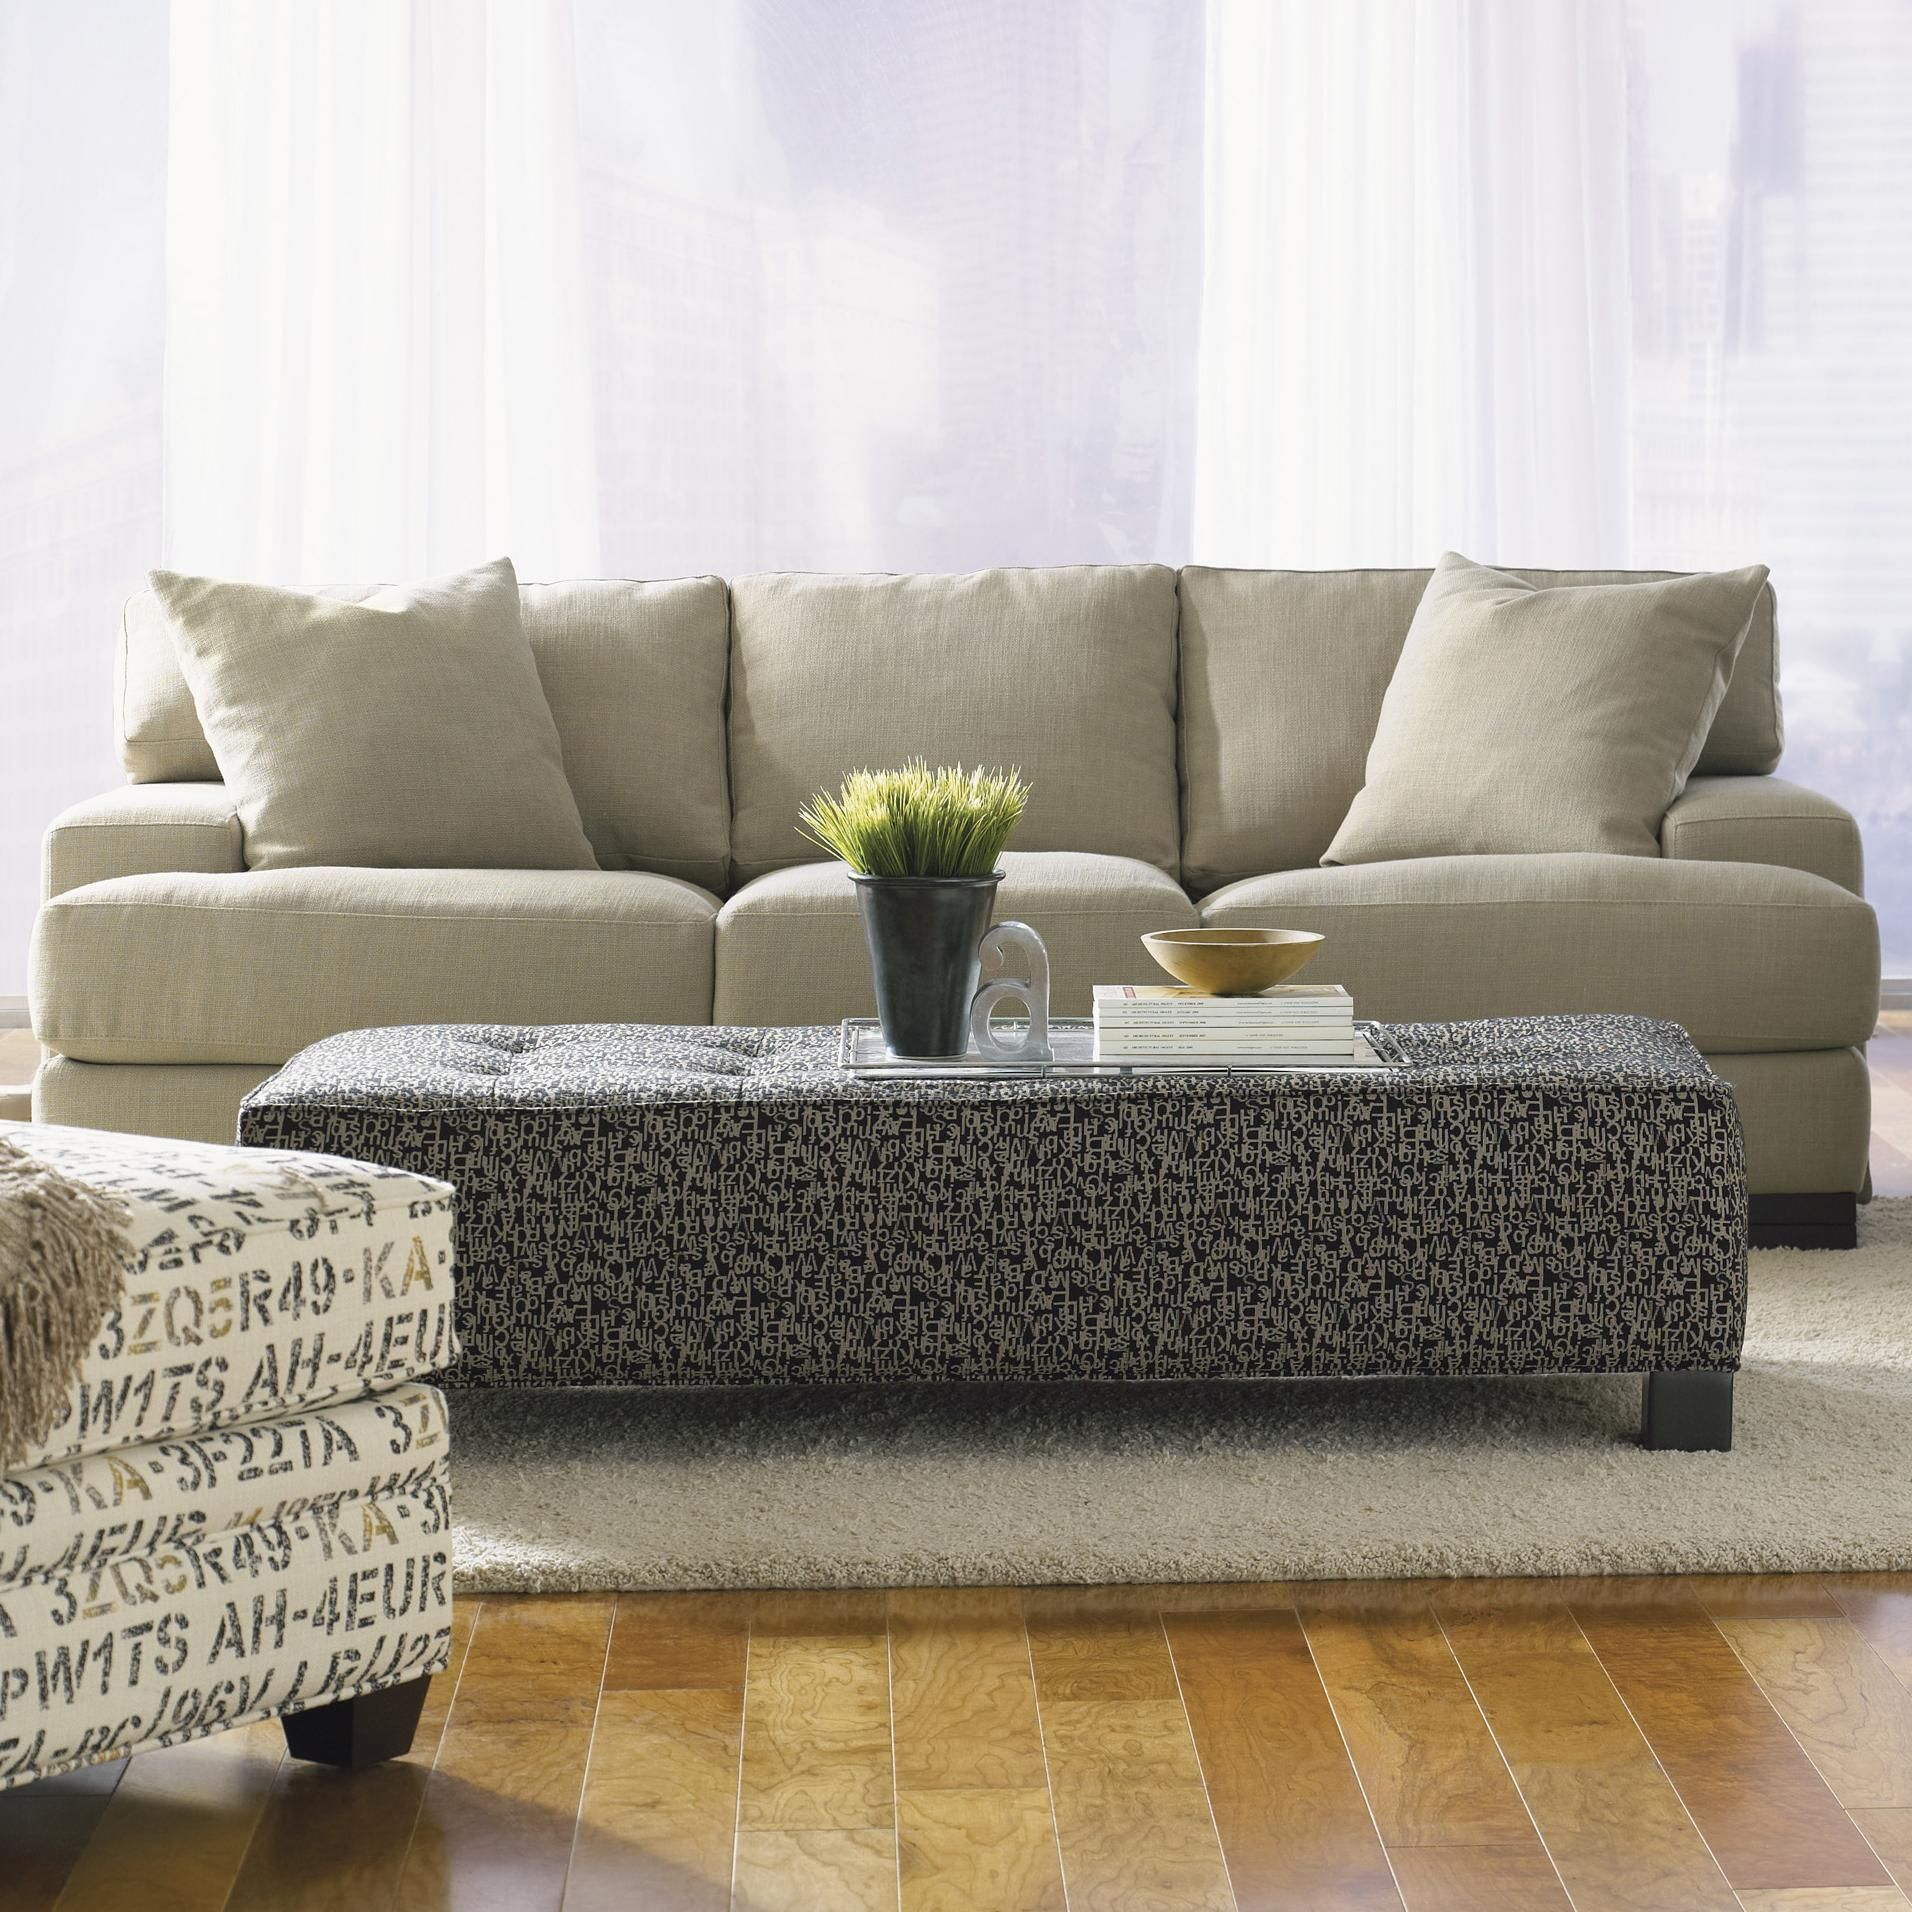 Burton Modern Sofa With Low Track Arms And Exposed Wood